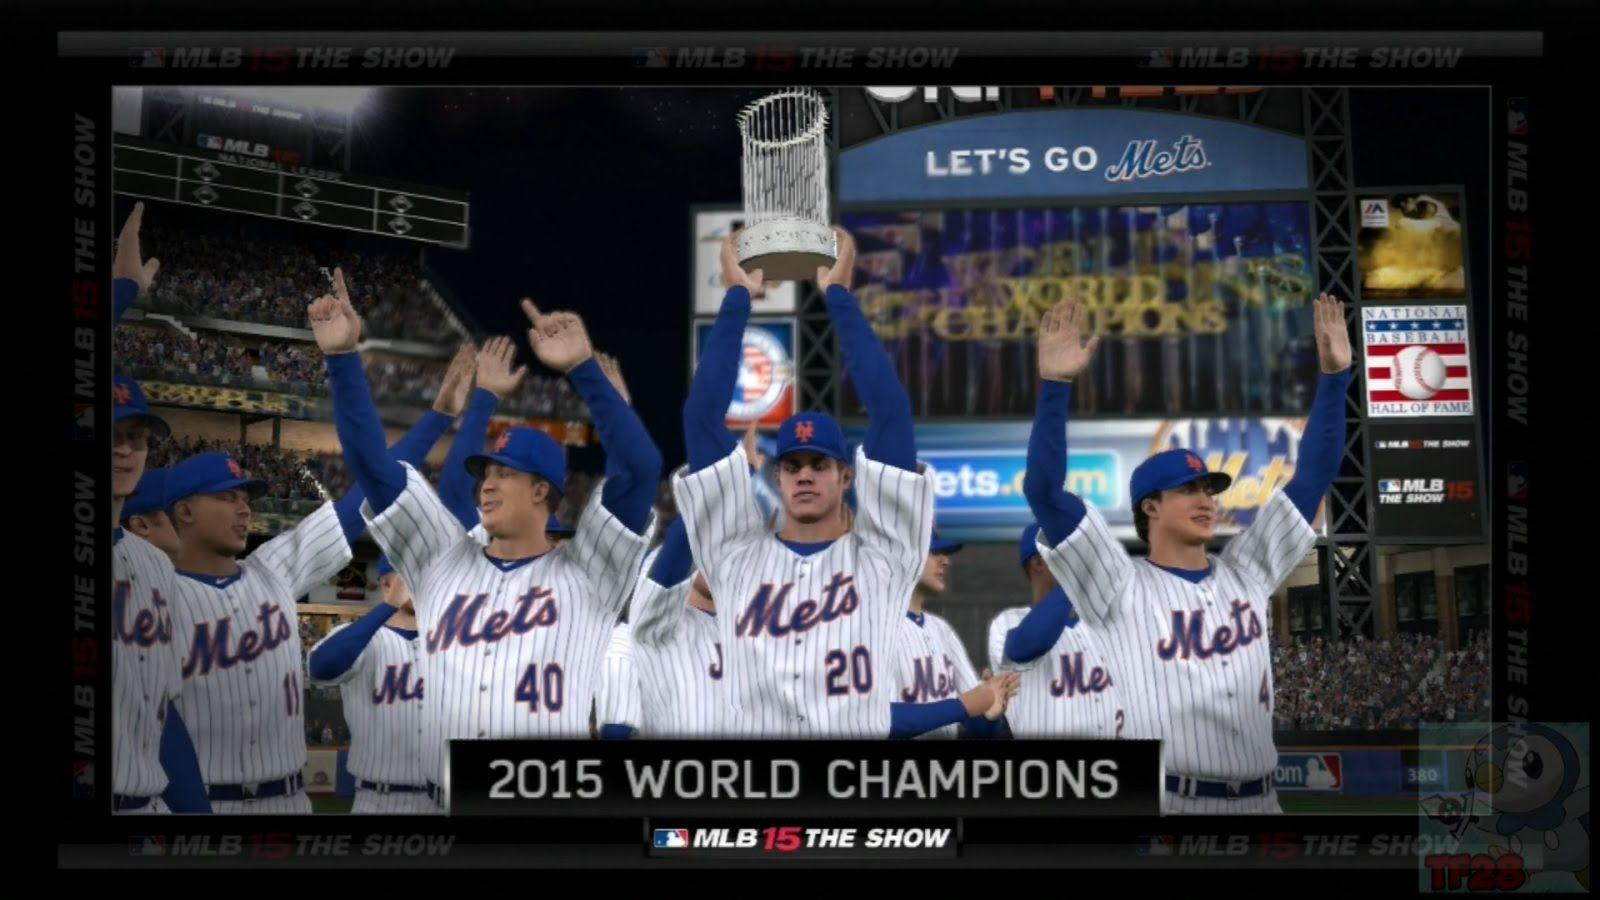 MLB 15 The Show - New York Mets World Series Celebration - YouTube